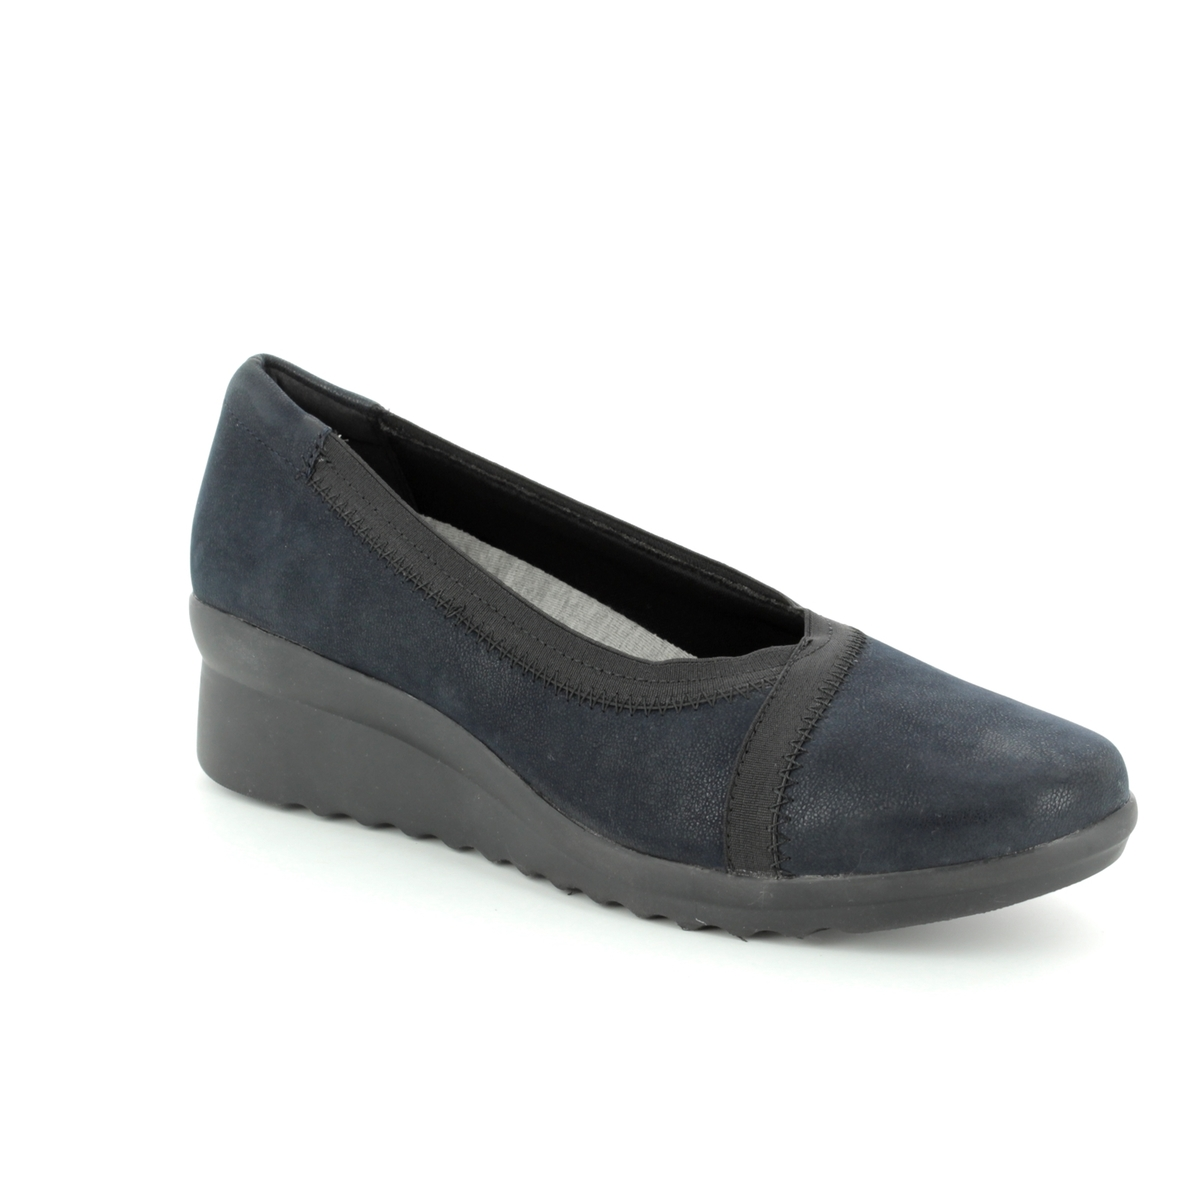 00213ce9df3 Clarks Wedge Shoes - Navy - 3202 34D CADDELL DASH